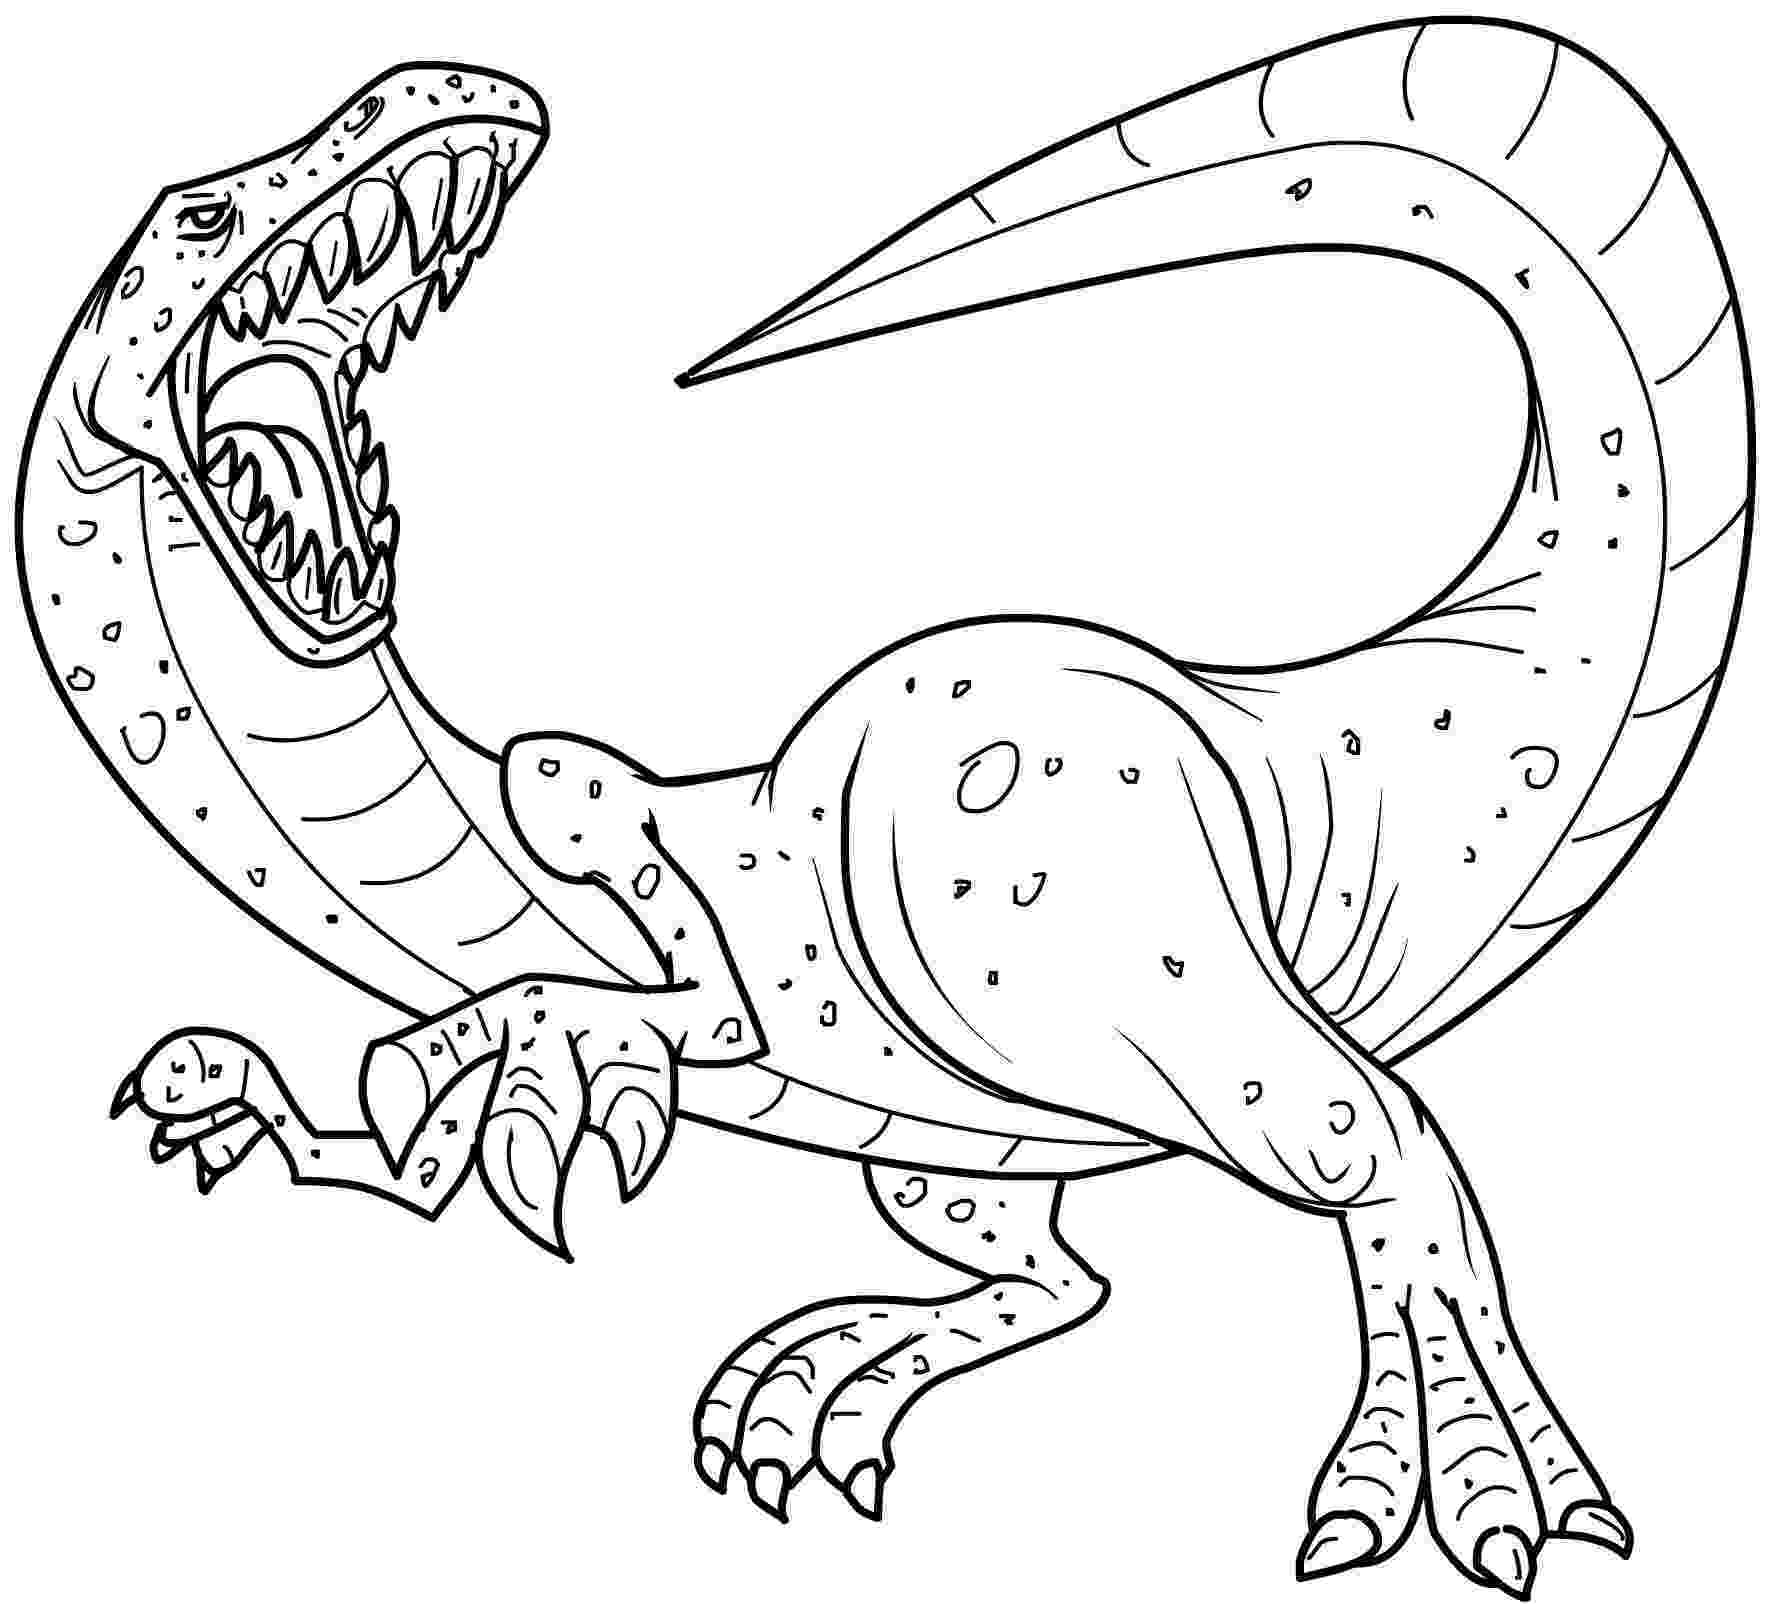 dinosaur colouring pictures to print free printable dinosaur coloring pages for kids print to pictures colouring dinosaur